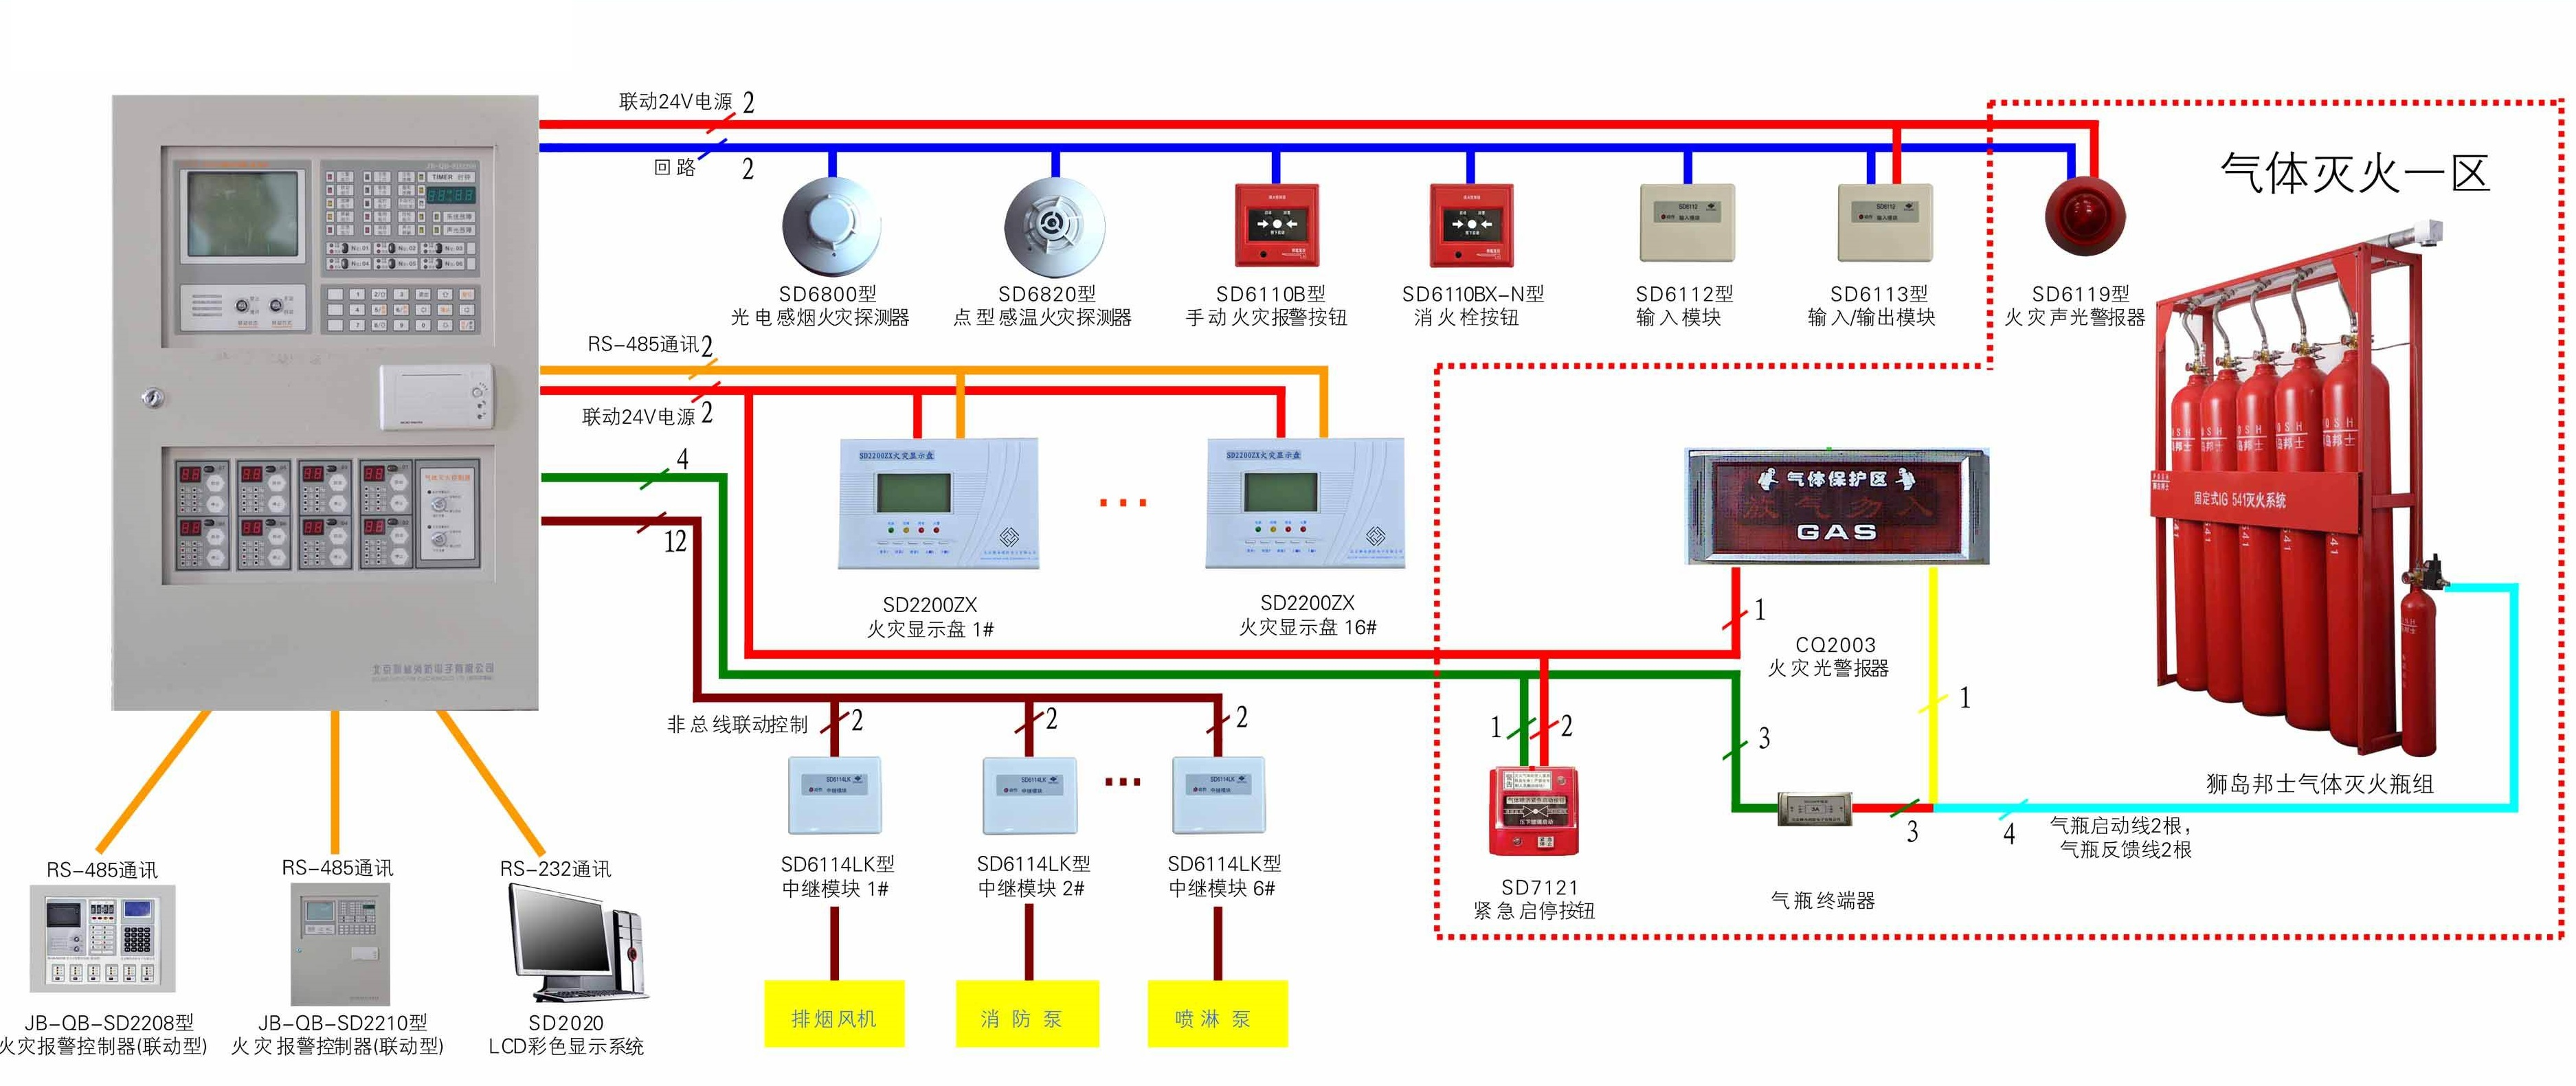 fire alarm controller fire alarm control panel wikipedia readingrat net zeta fire alarm wiring diagram at crackthecode.co